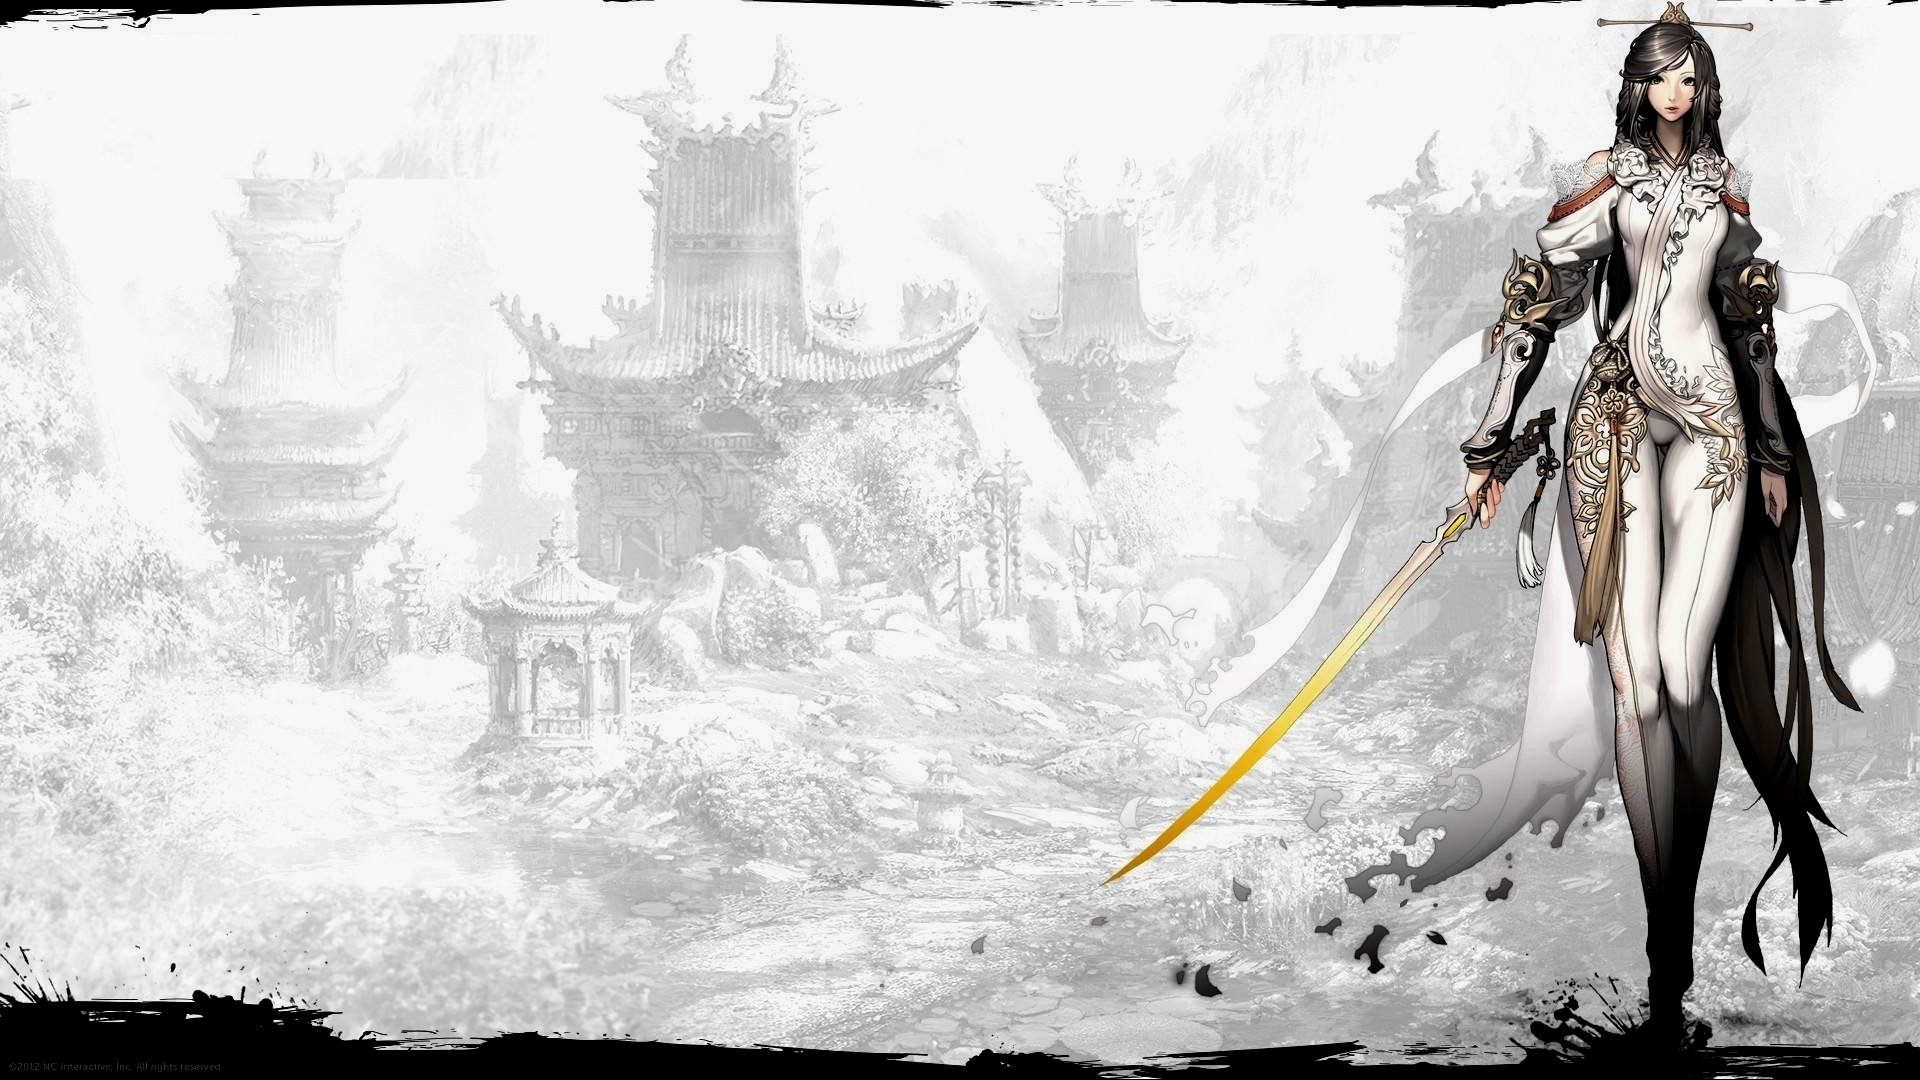 Blade And Soul Wallpaper: Blade & Soul HD Wallpaper